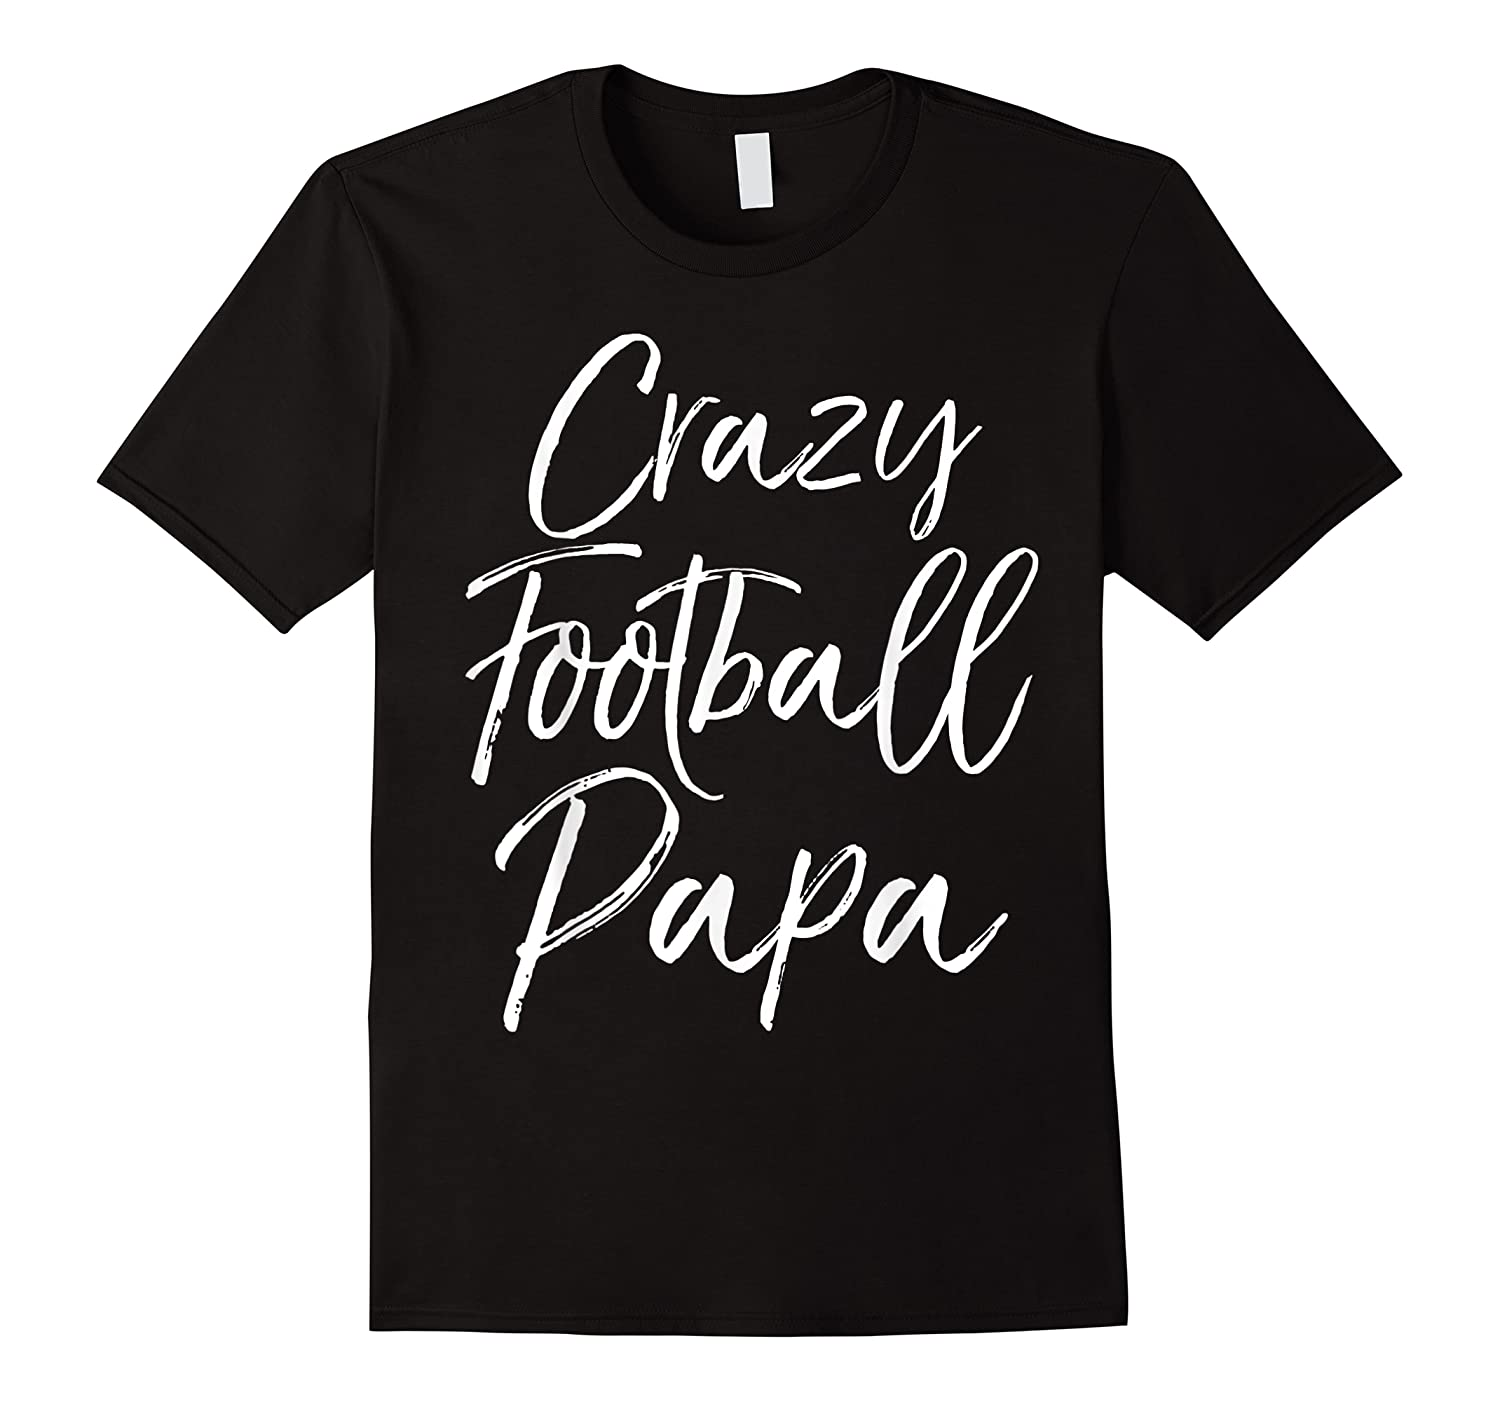 Funny Matching Football Gifts For Family Crazy Football Papa T-shirt